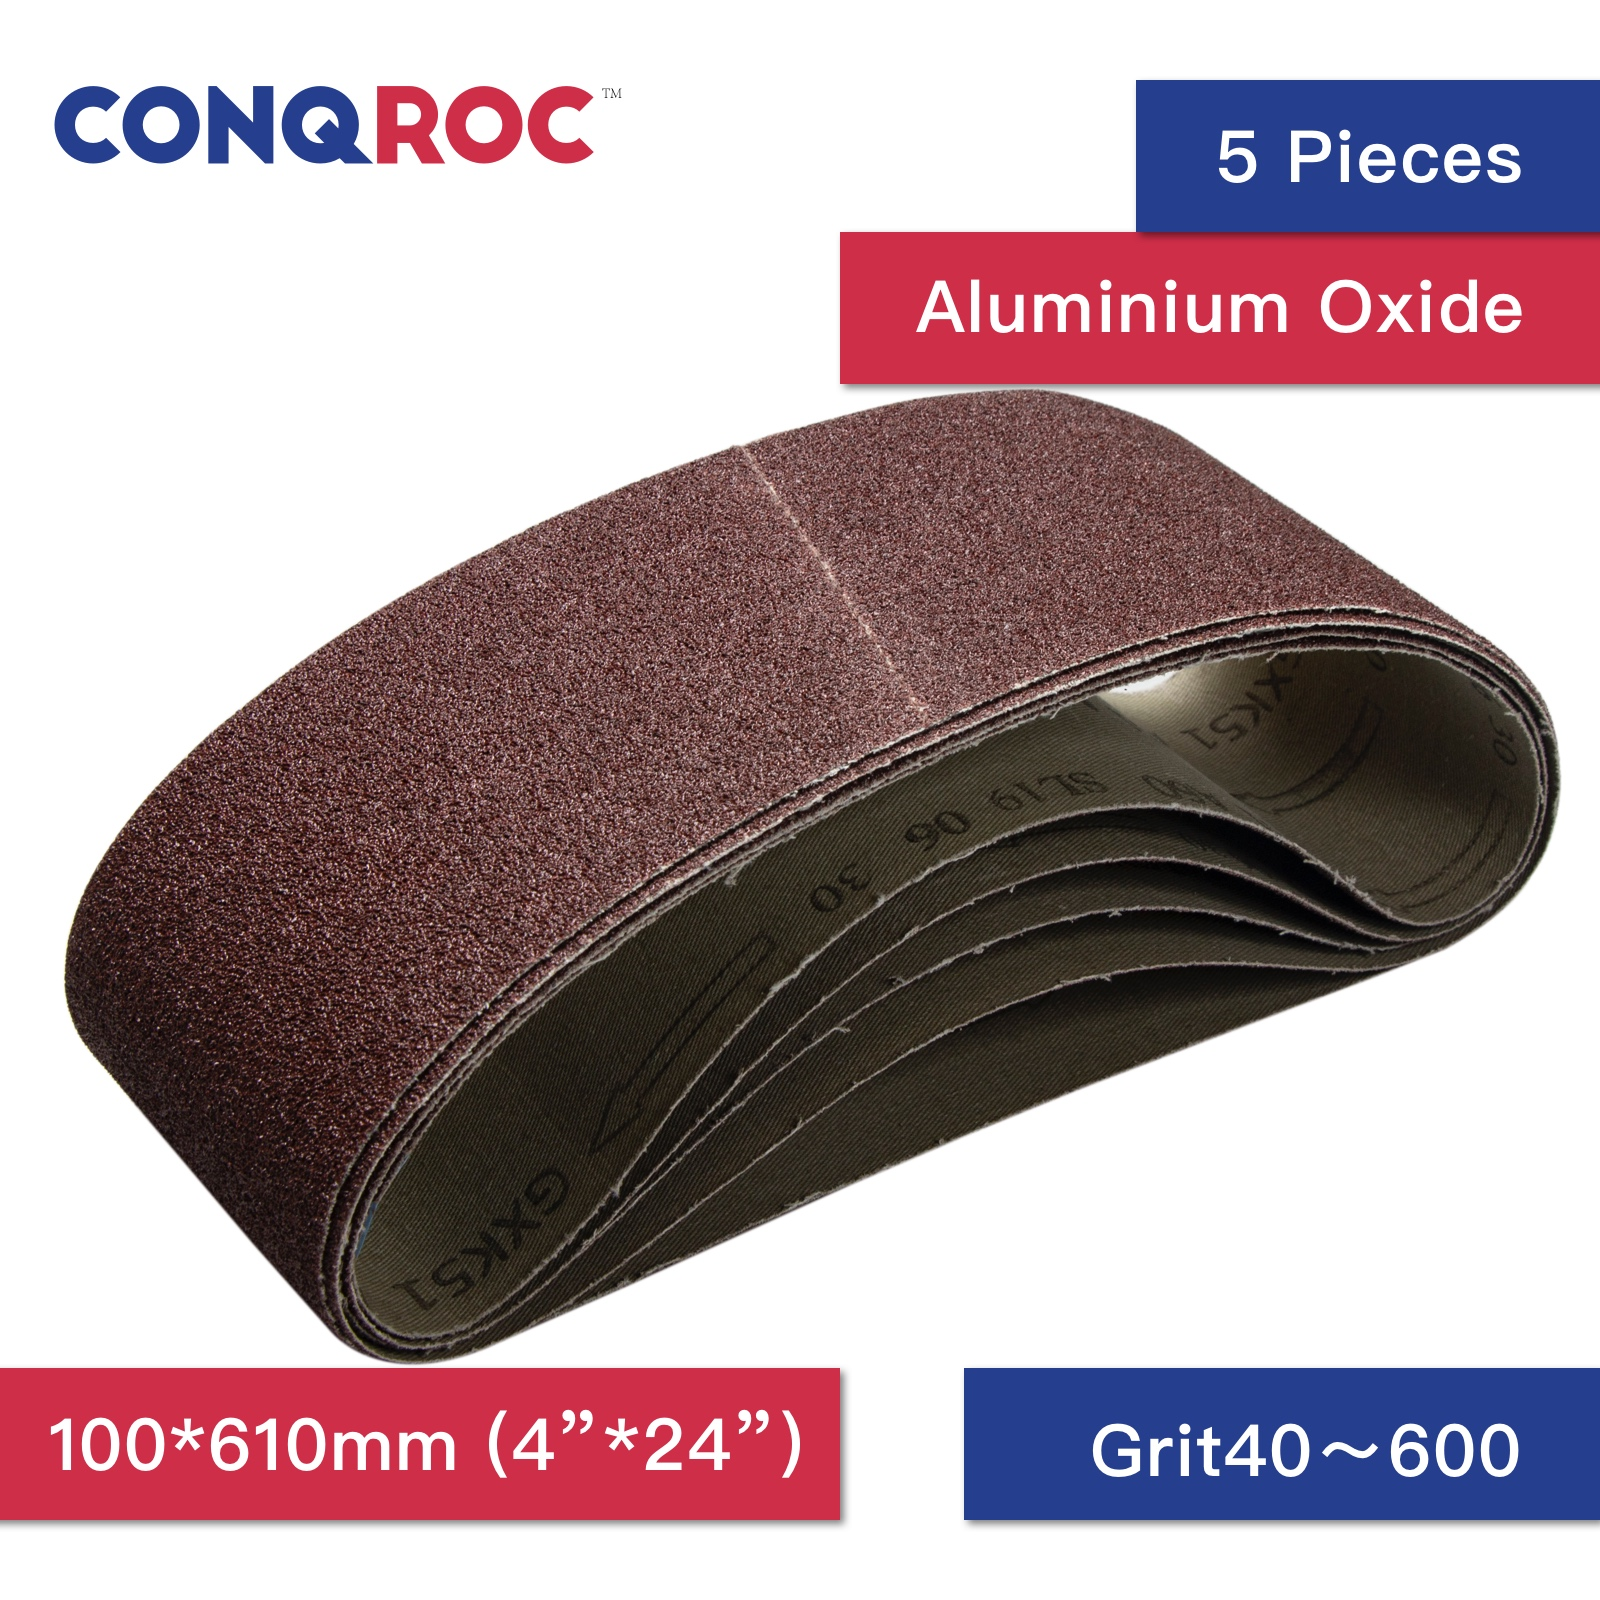 5 Pieces 100 X 610mm 4'' X 24'' Sanding Belt Aluminum Oxide Sander Belt Grit 40 60 80 100 120 180 240 320 400 600 Abrasive Tools